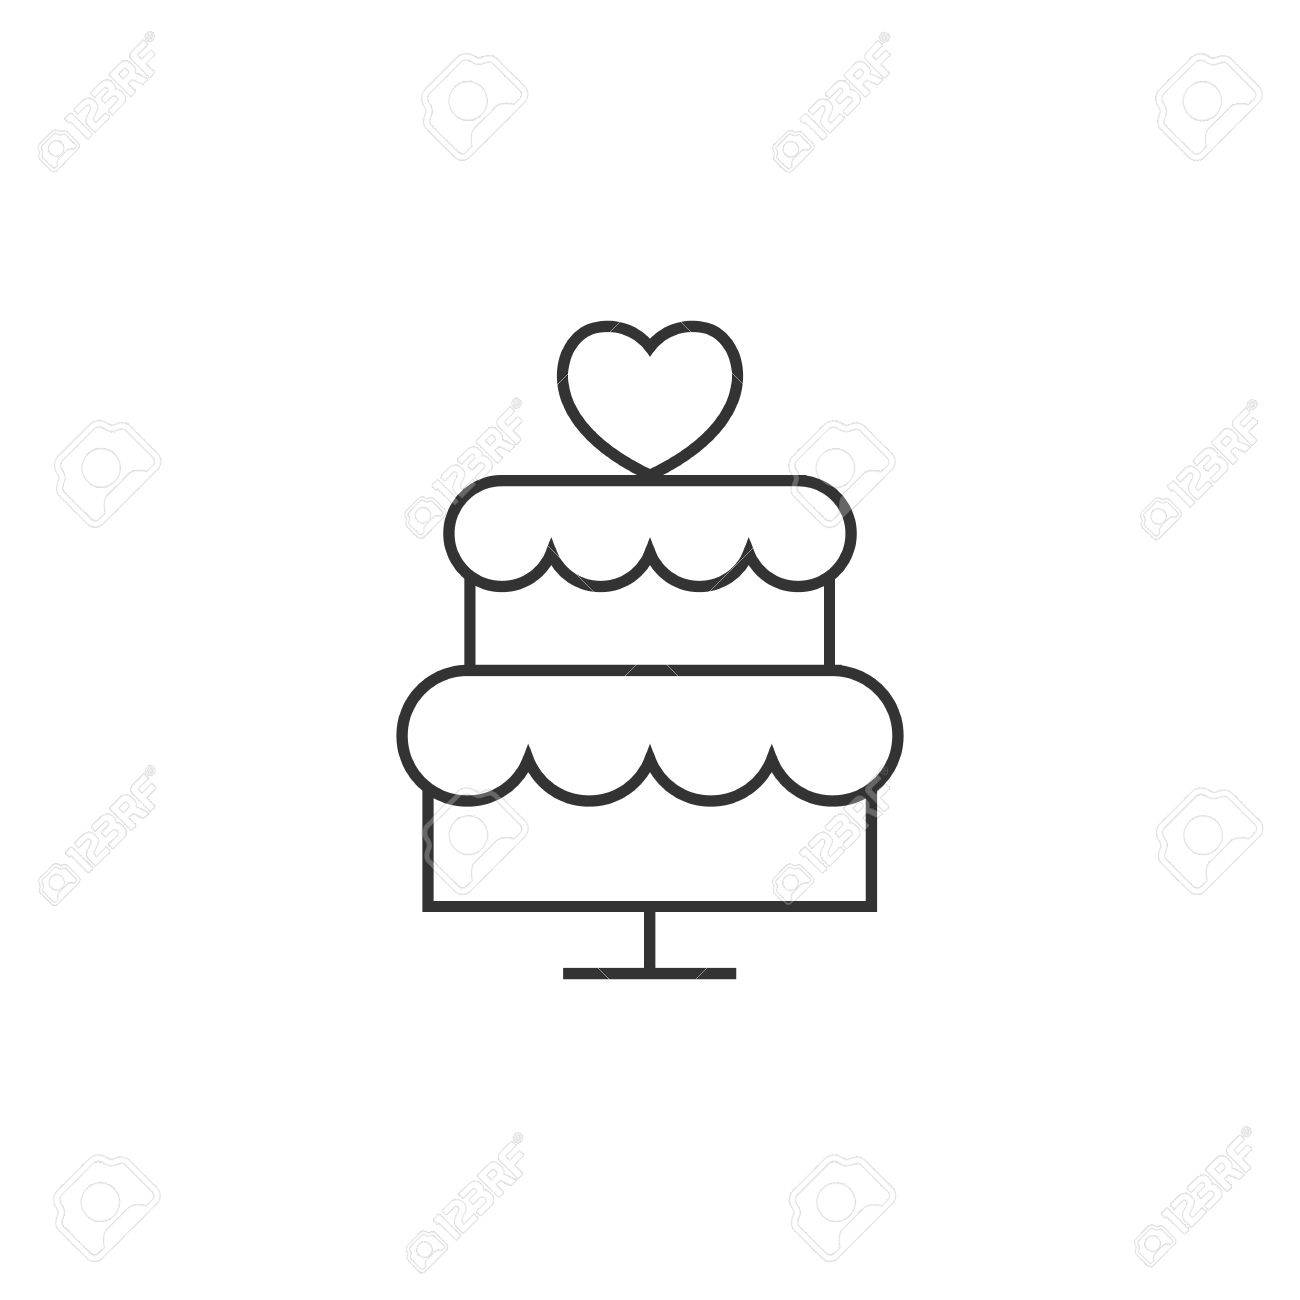 Wedding Cake Icon In Thin Outline Style Romantic Married Party - Wedding Cake Outline